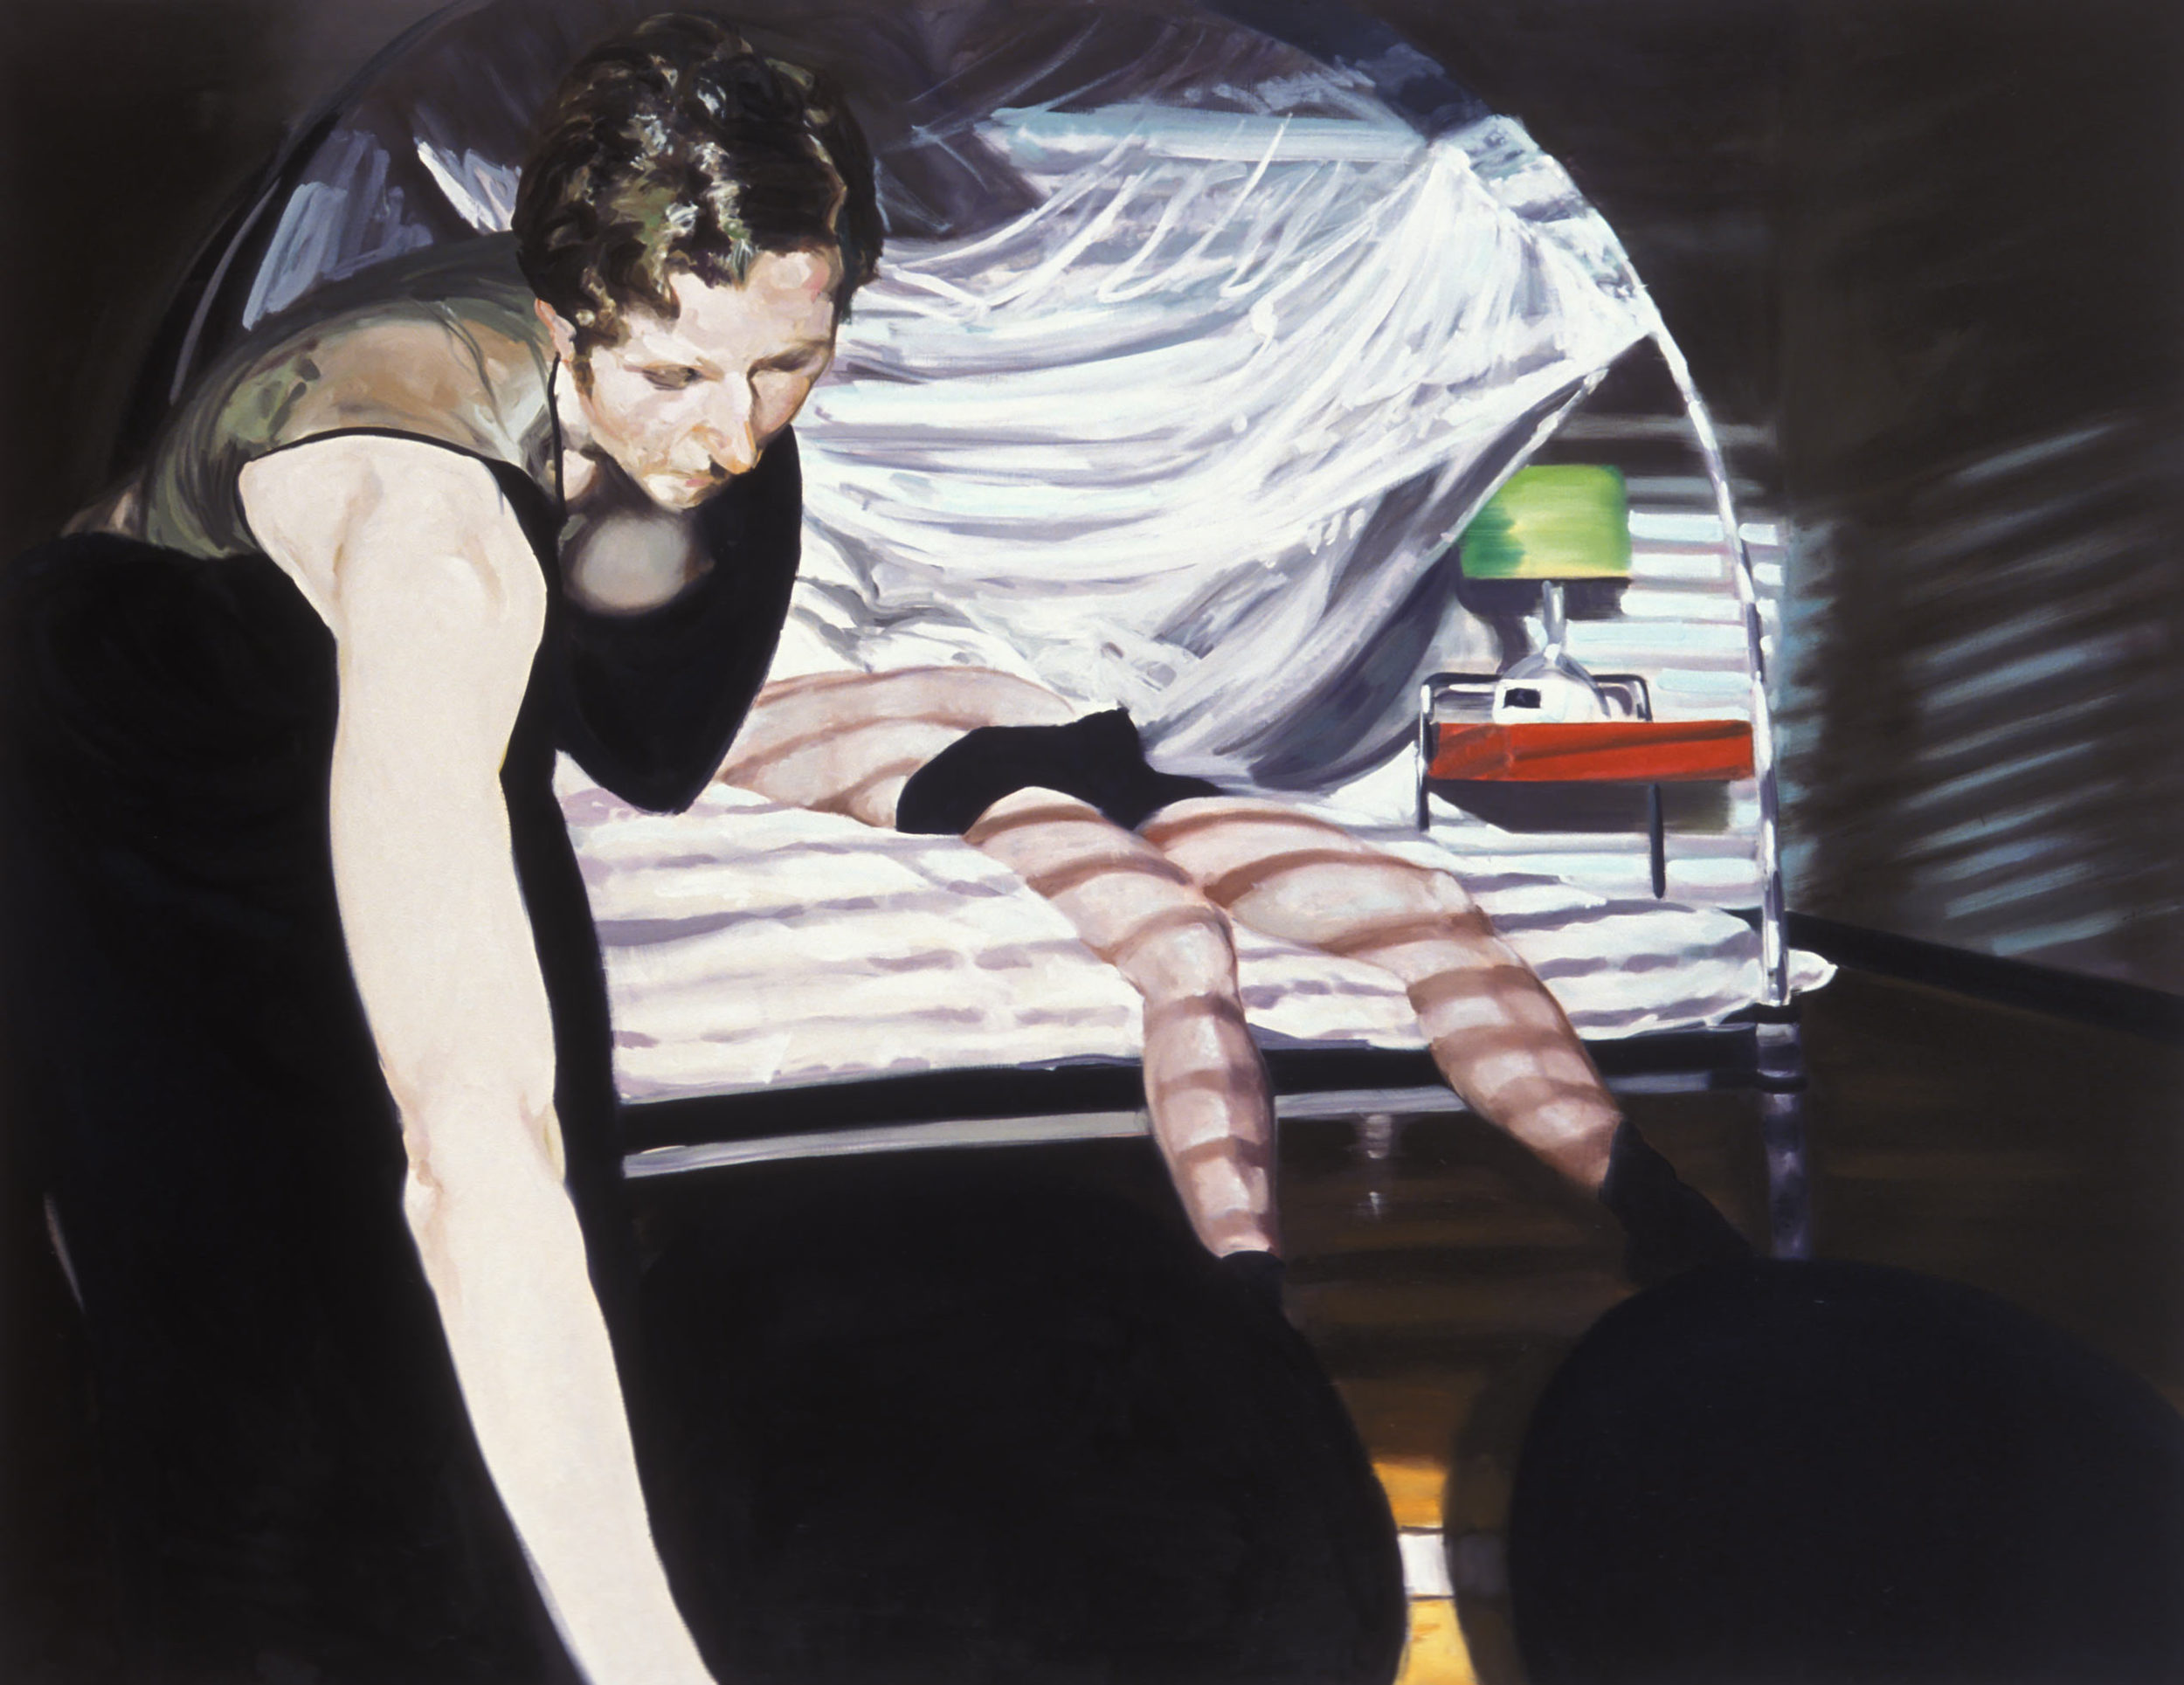 Bedroom, Scene #3, Mistakes Mistakes! Everything Shakes from All the Mistakes, 2004.